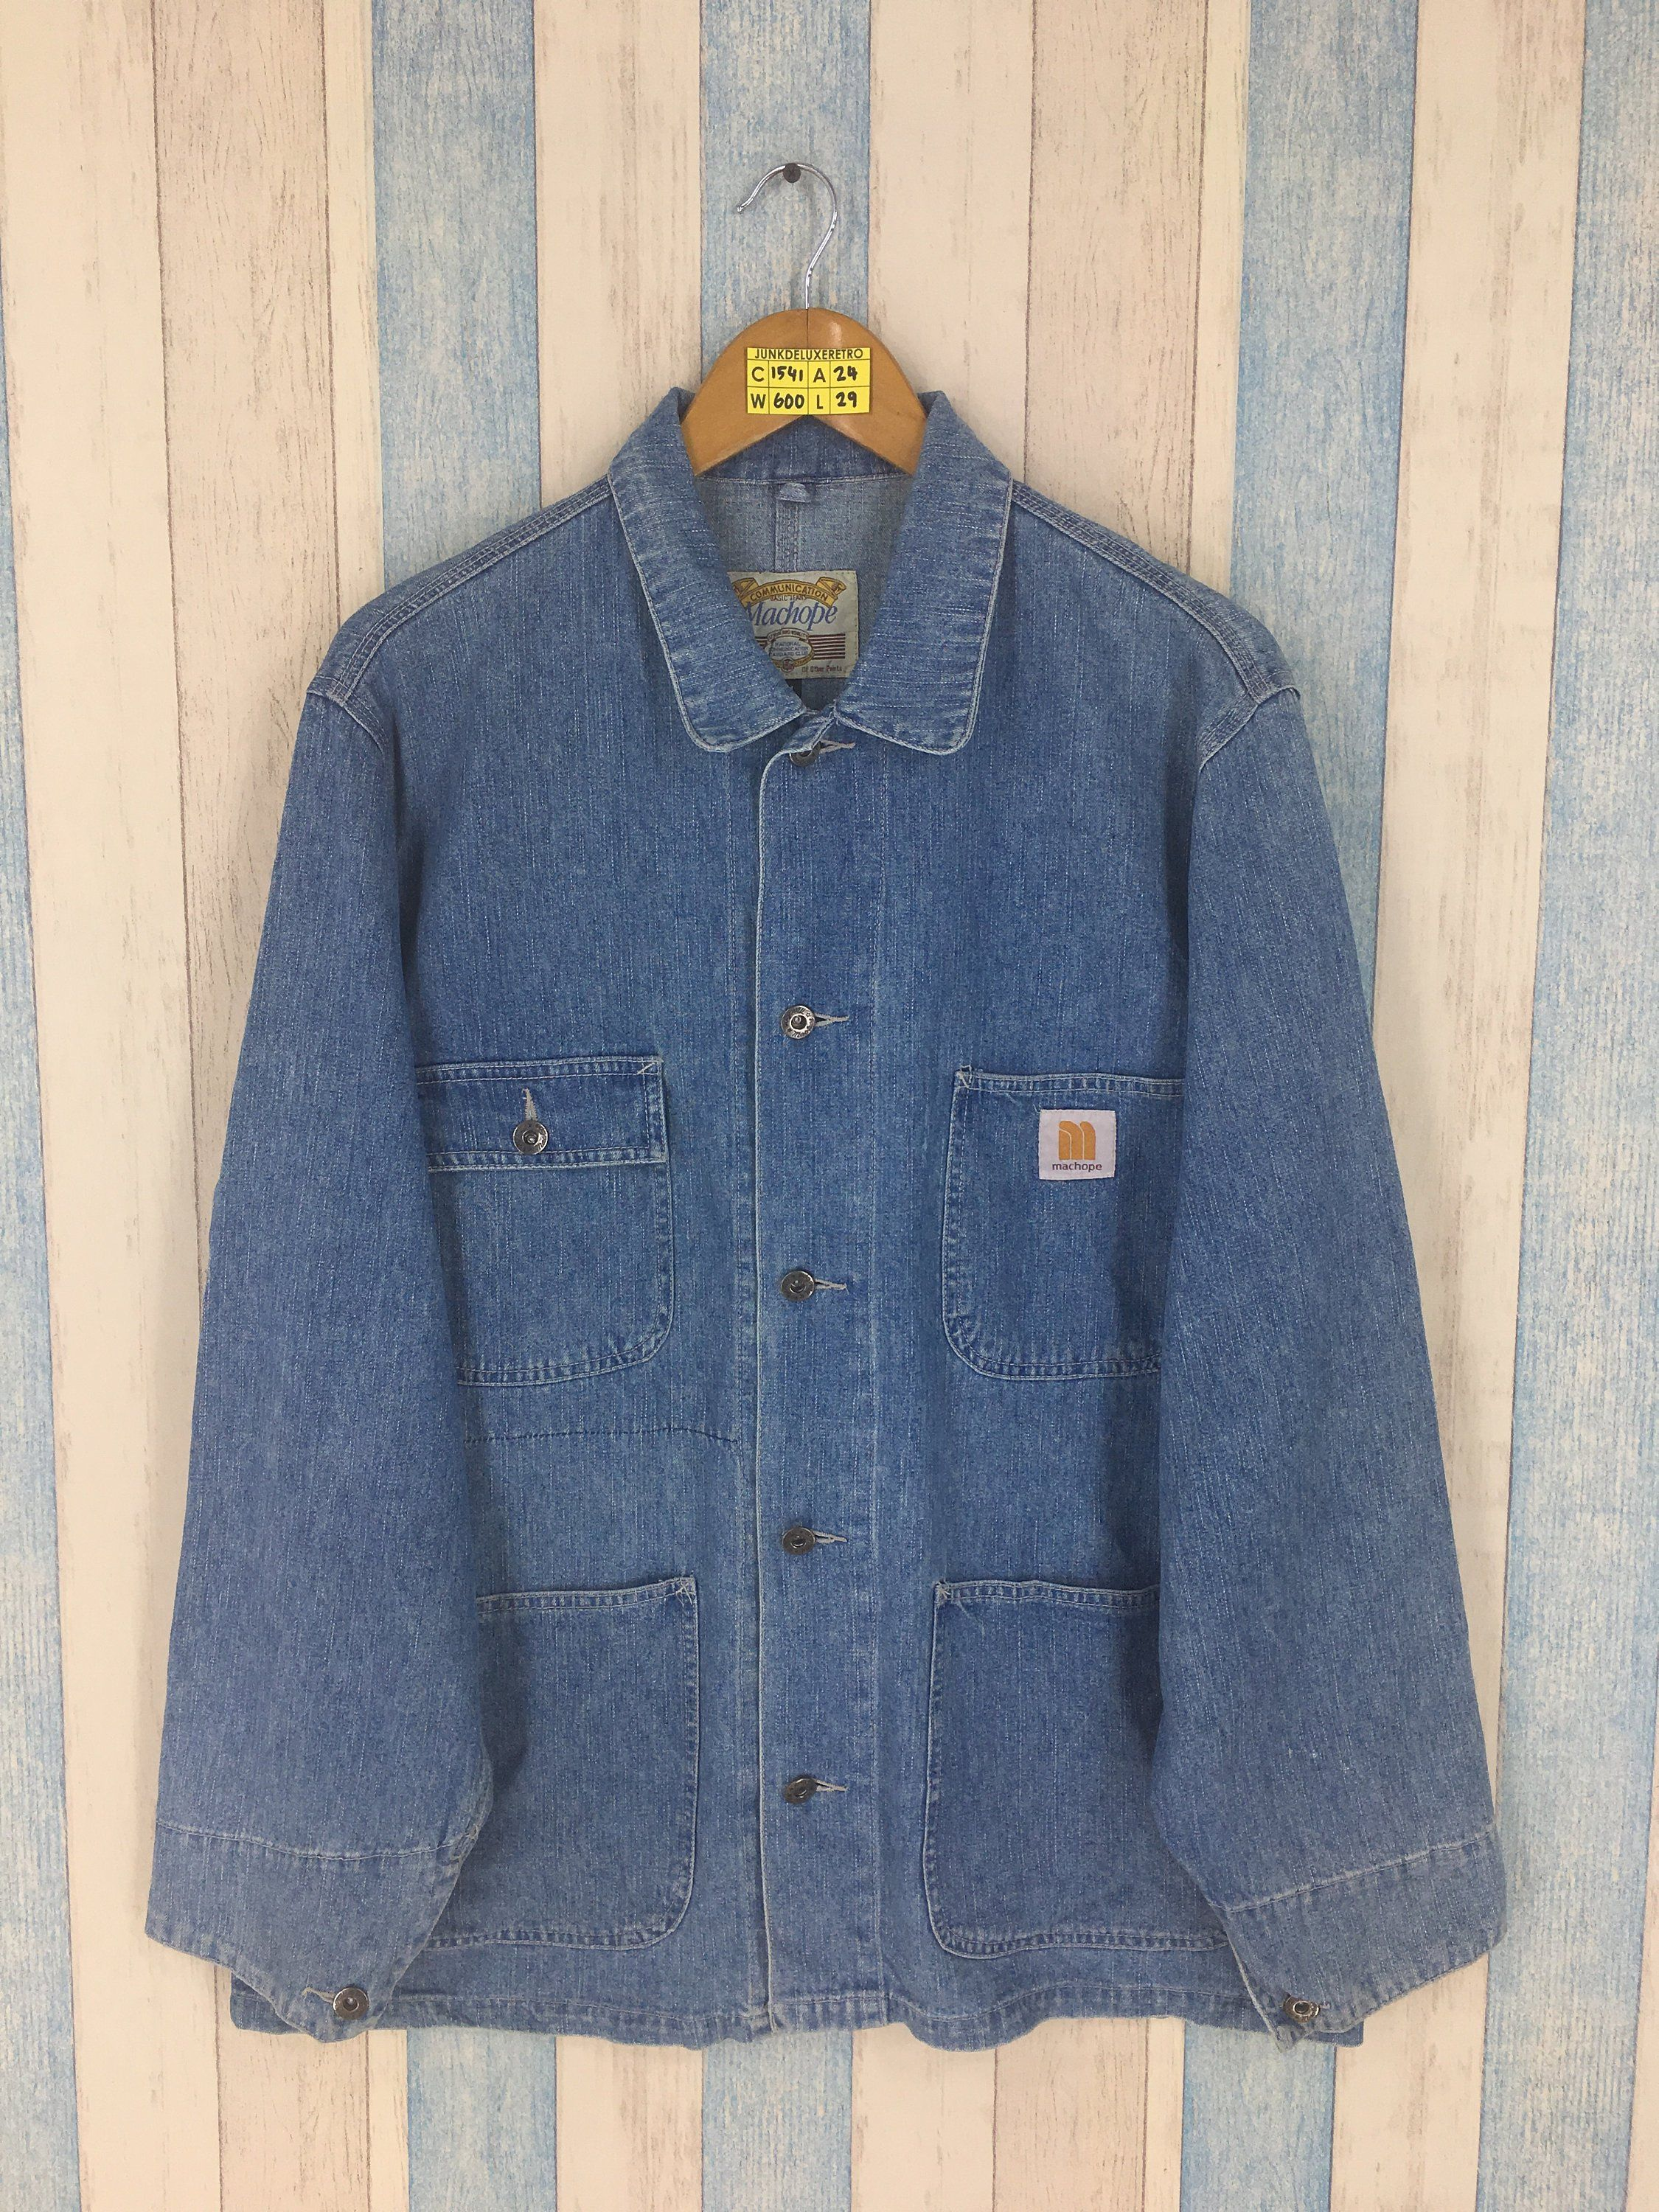 c0e26acab7f Vintage MACHOPE Denim Jacket Medium 80 s Machope Workwear Chore Jacket Jeans  Four Pockets Union Made Blue